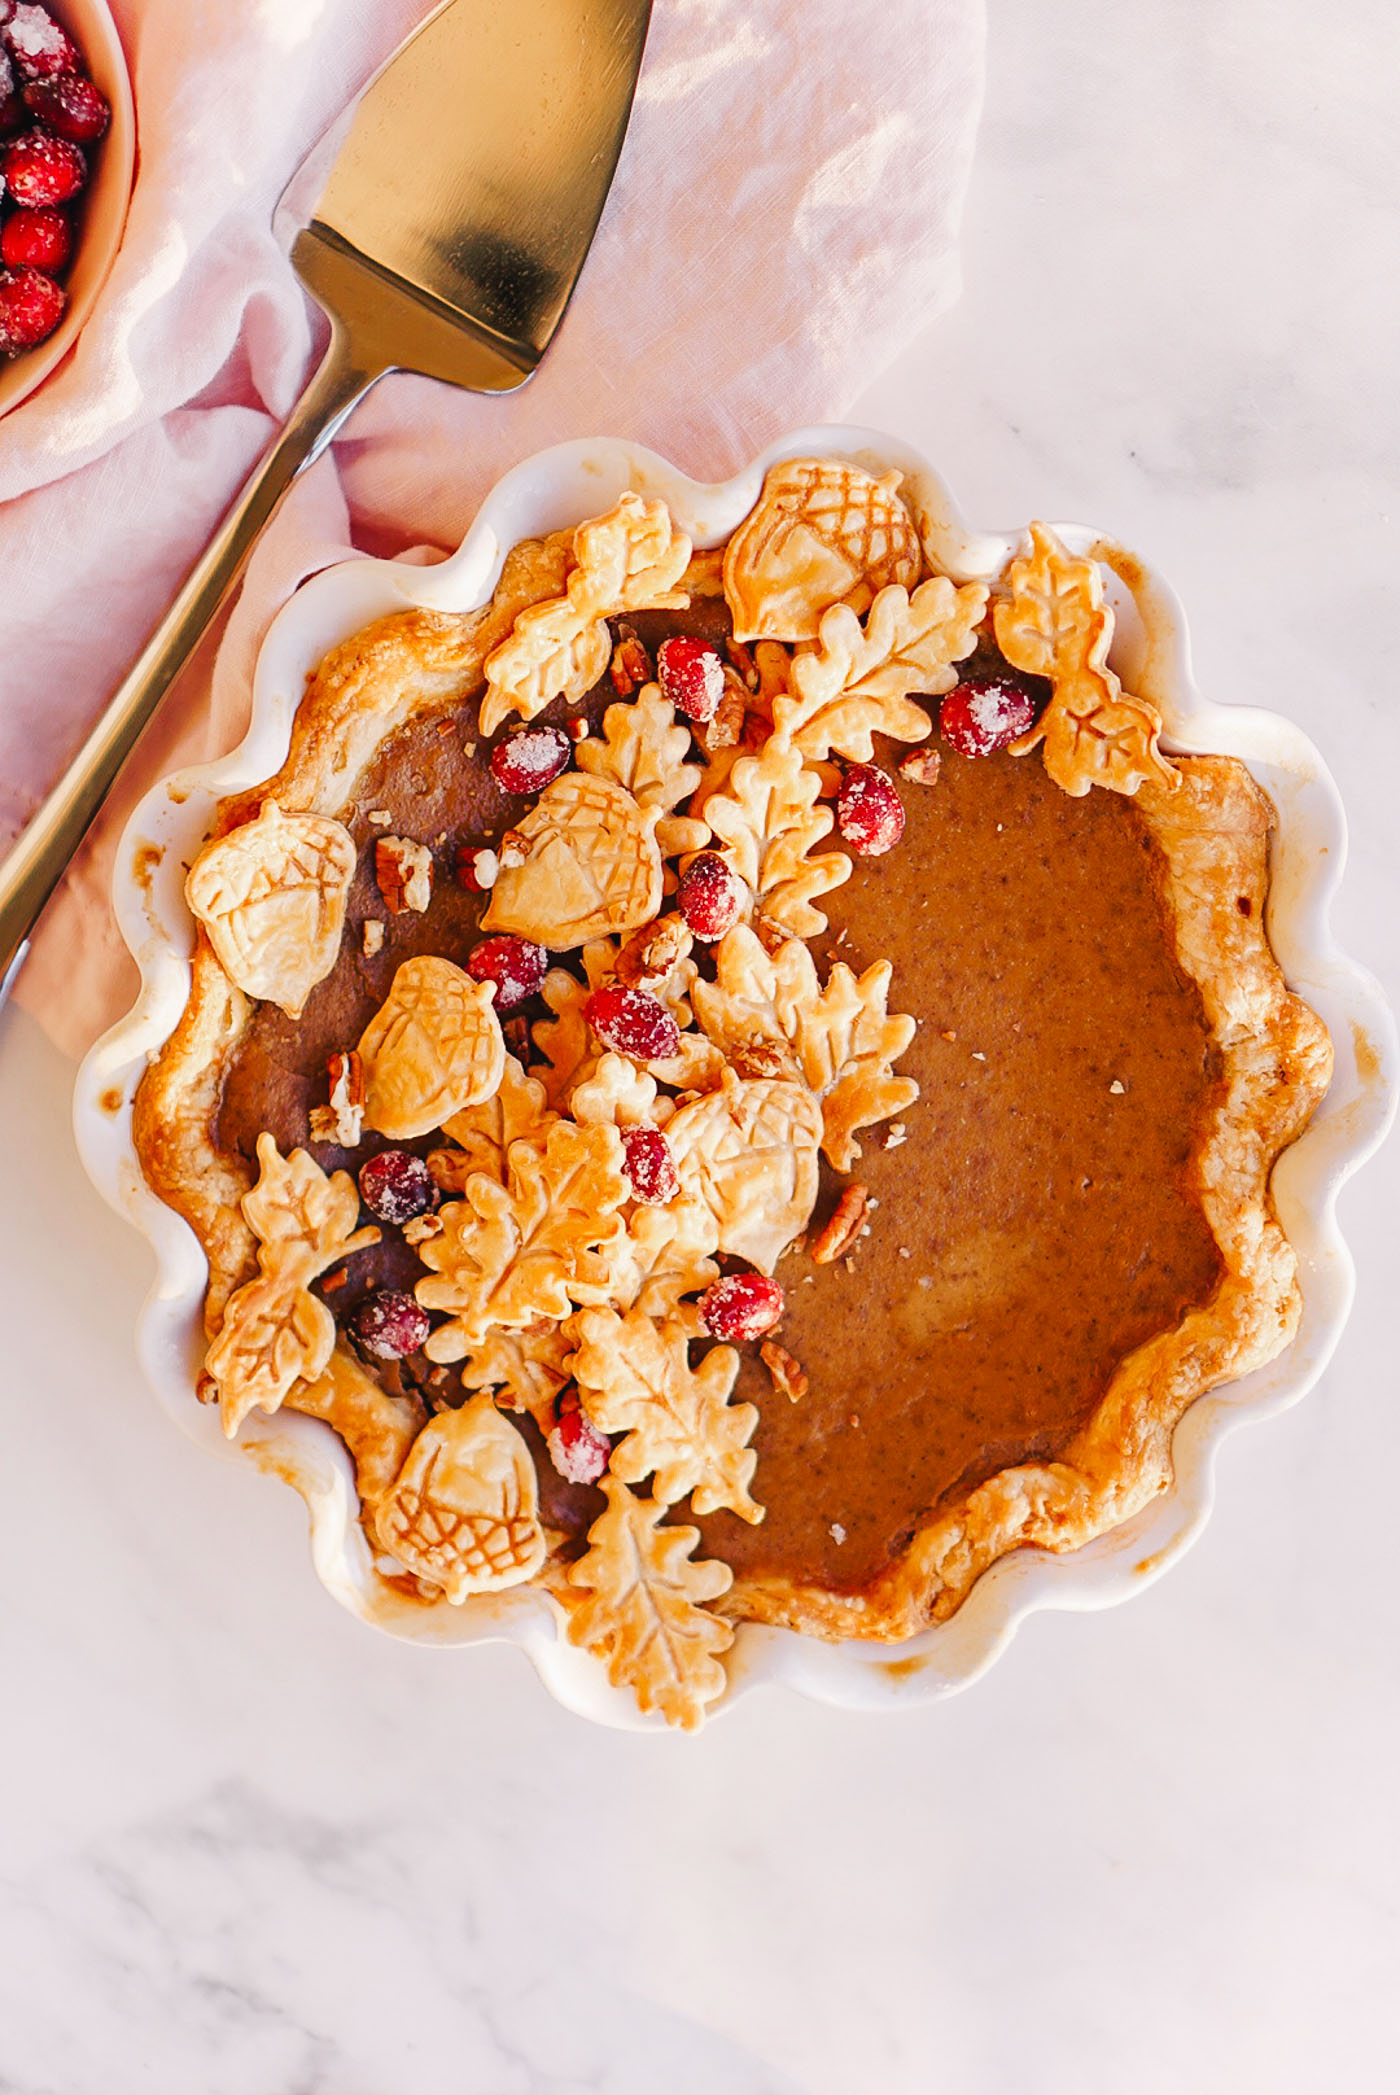 maple pumpkin pie topped with pie crust leaves and sugared cranberries in white ruffle dish on light pink dish towel